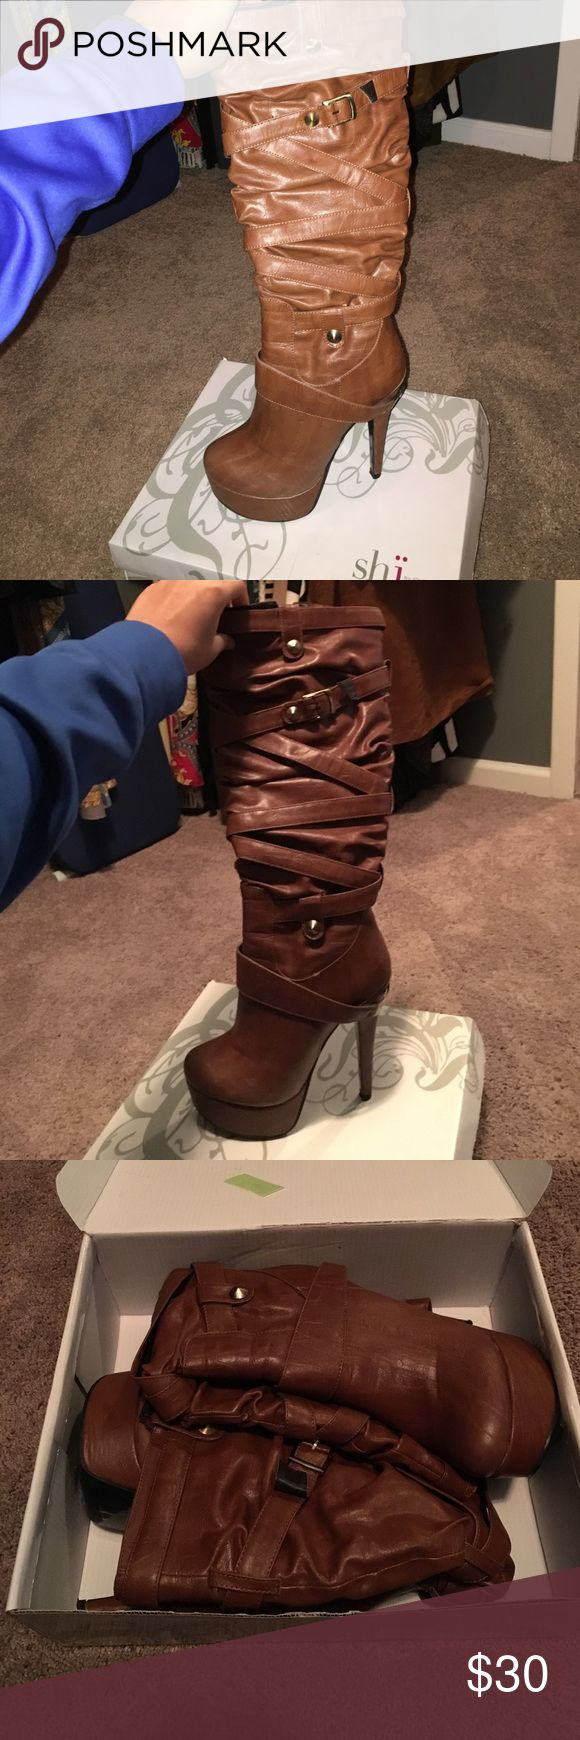 Brown Heeled Boots Worn a few times. Great condition! Super cute and comfortable. :) Shi by Journeys Shoes Heeled Boots